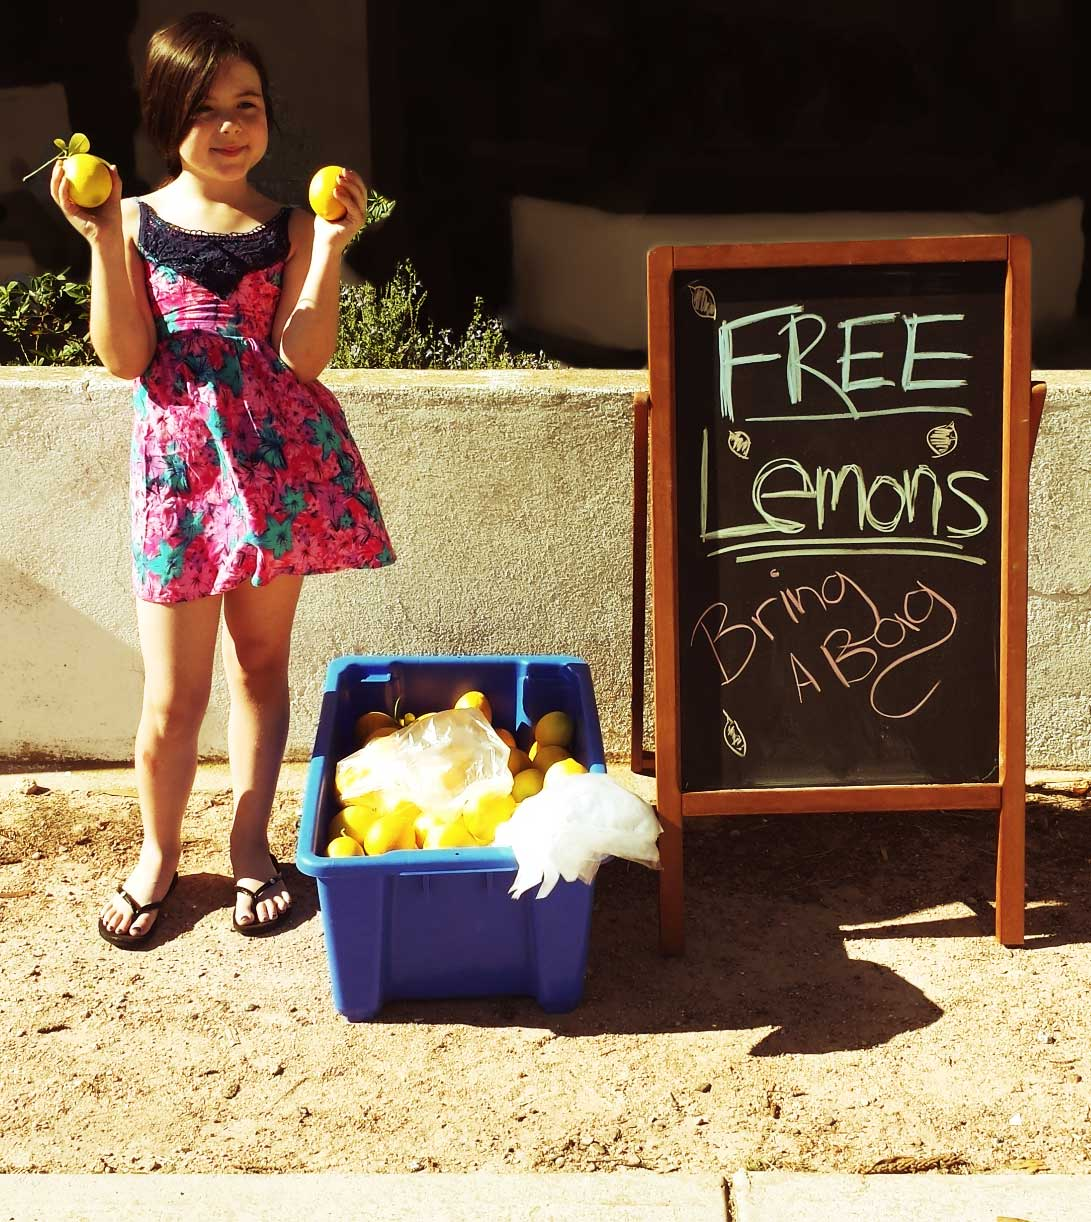 Tookii things to do with kids with lemons one of the outdoor activities for kids